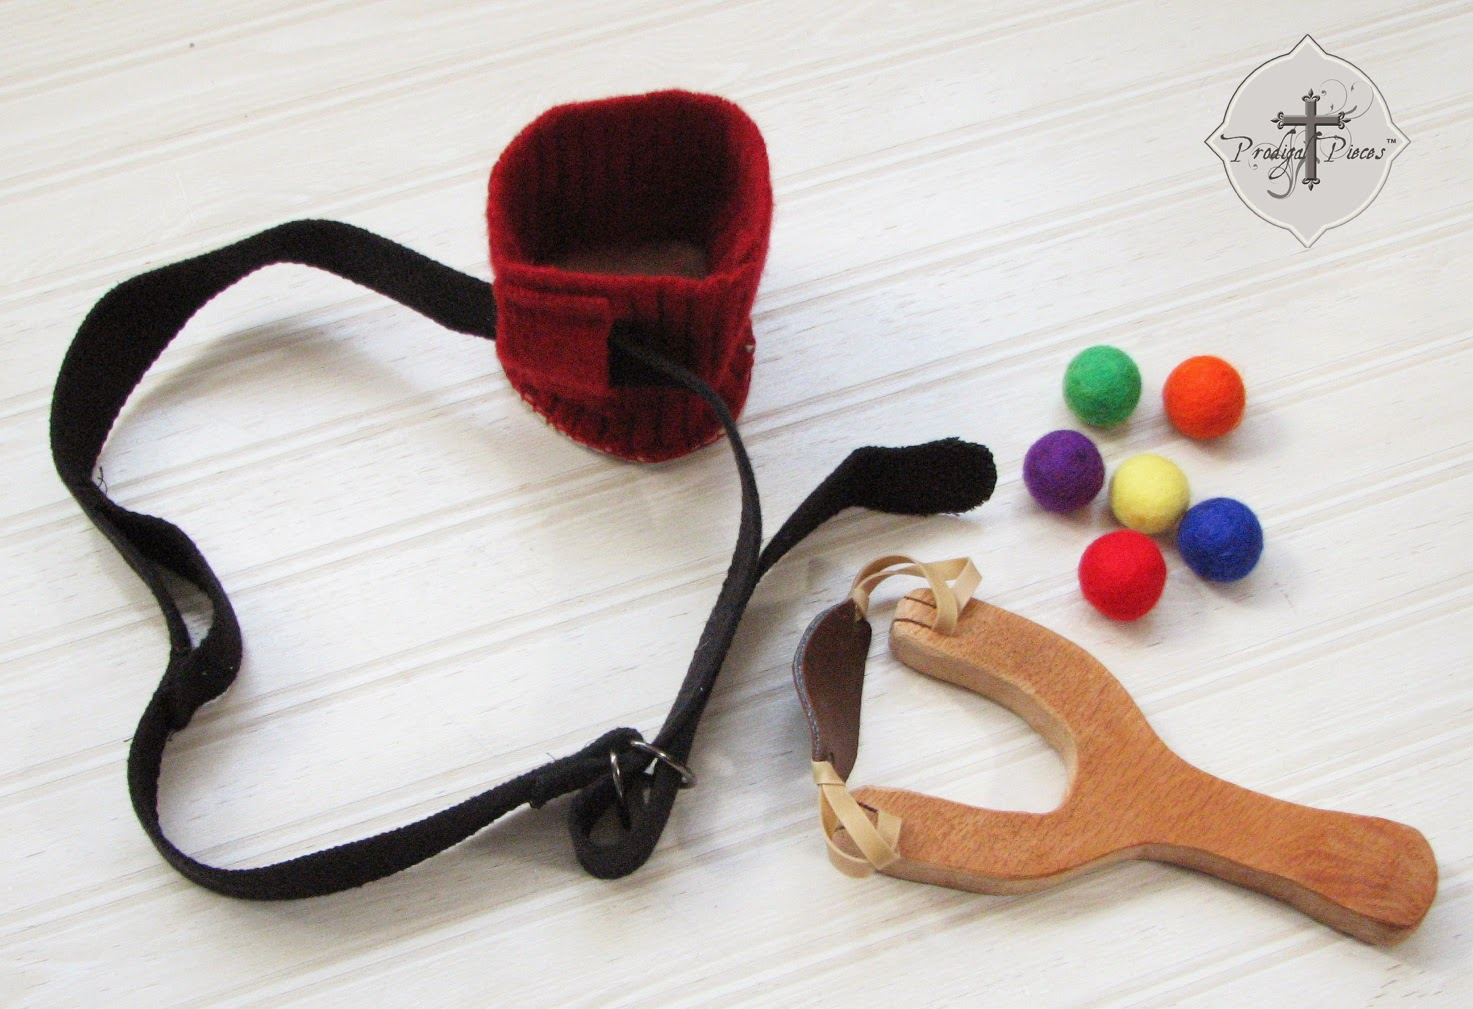 Handmade Wooden Slingshot with Felted Wool Balls & Holster via Prodigal Pieces